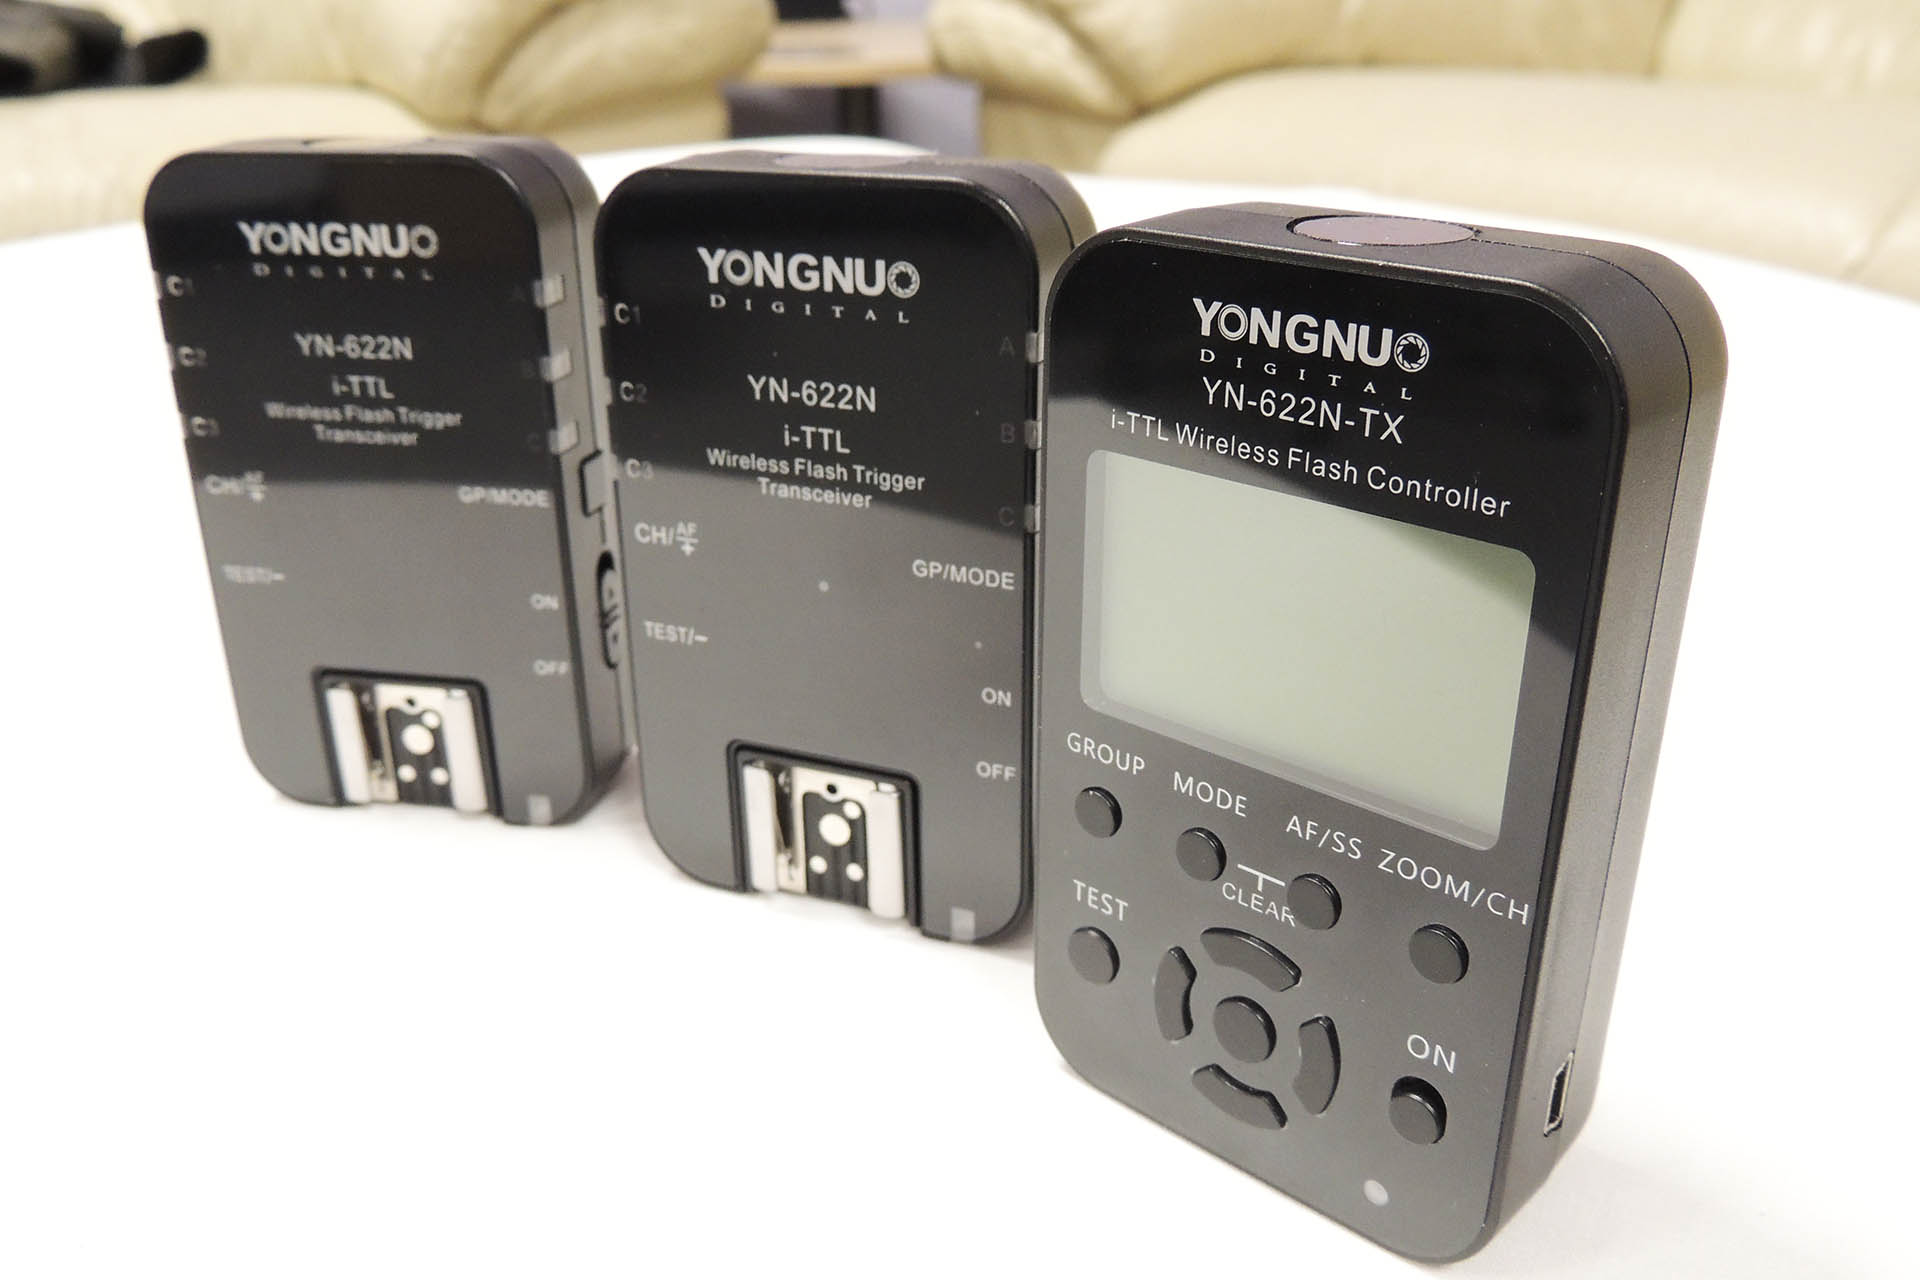 Yongnuo YN-622N-TX and 2 x YN-622N for sale at Plasma Music